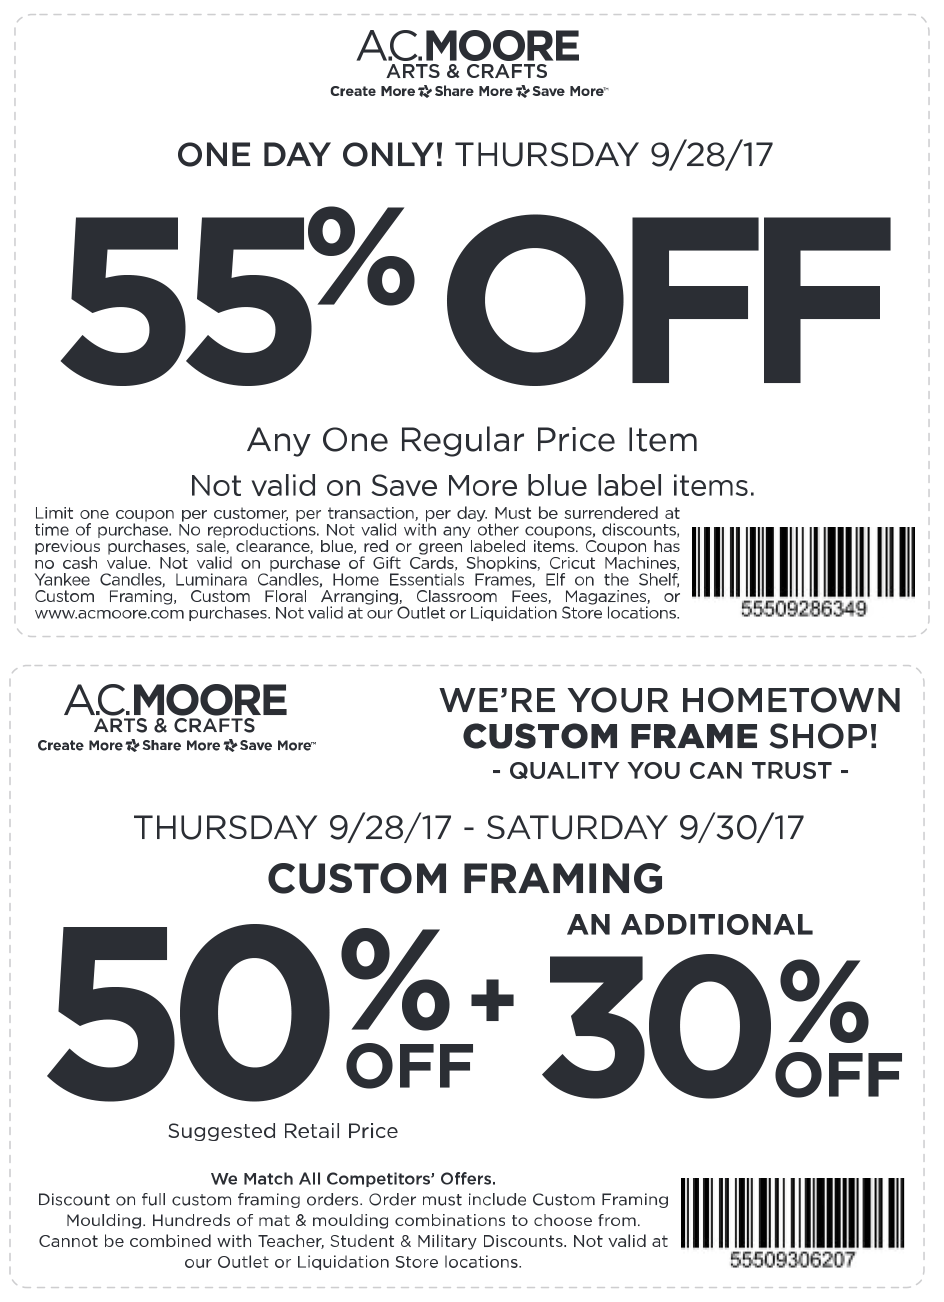 photo about Ac Moore Printable Coupons called A.C. Moore Discount codes - 50% off a one merchandise at A.C. Moore